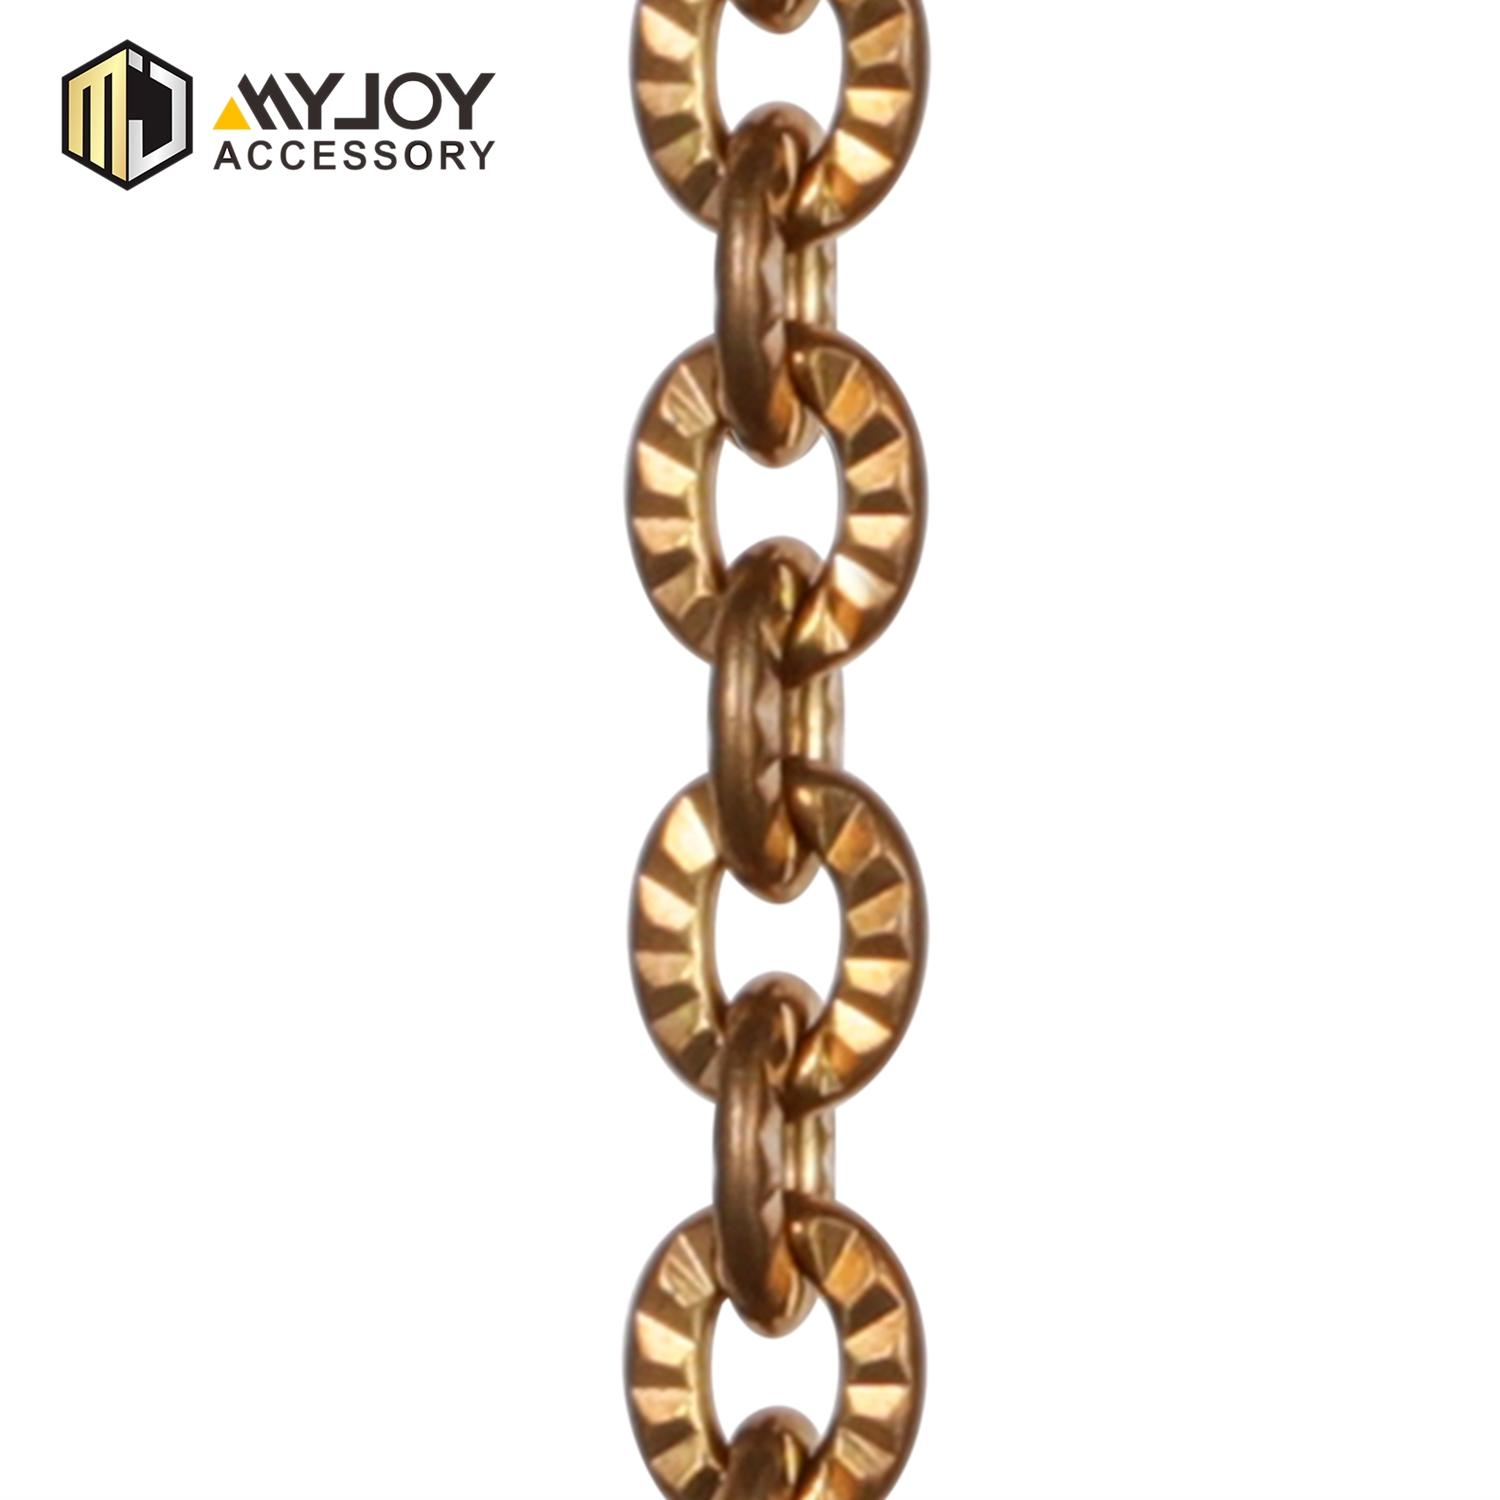 MYJOY handbag chain strap company for bags-1